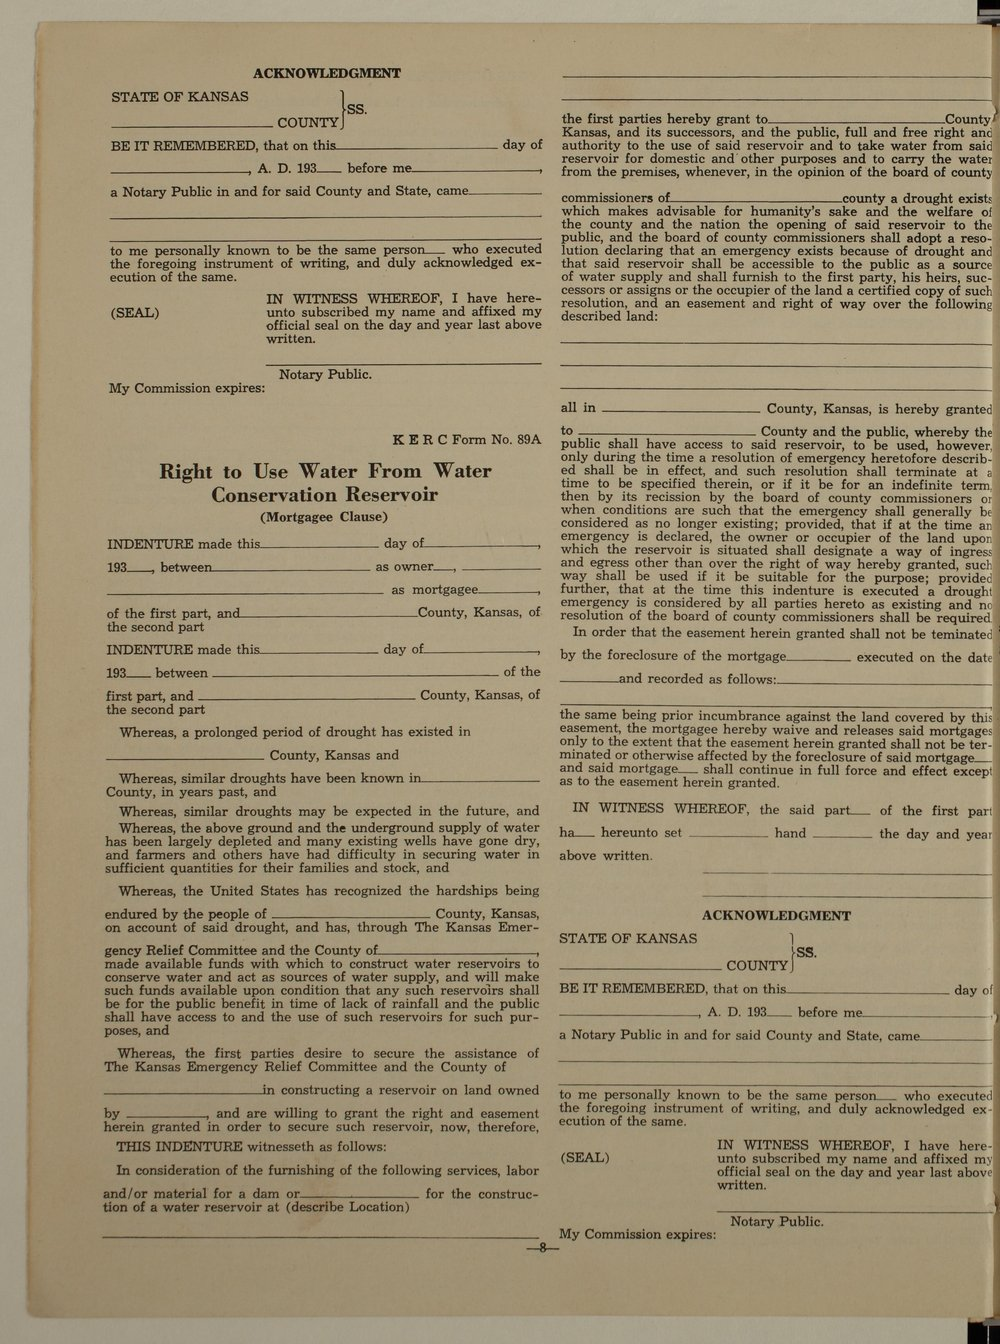 Kansas Emergency Relief Committee, bulletin 72 - 8